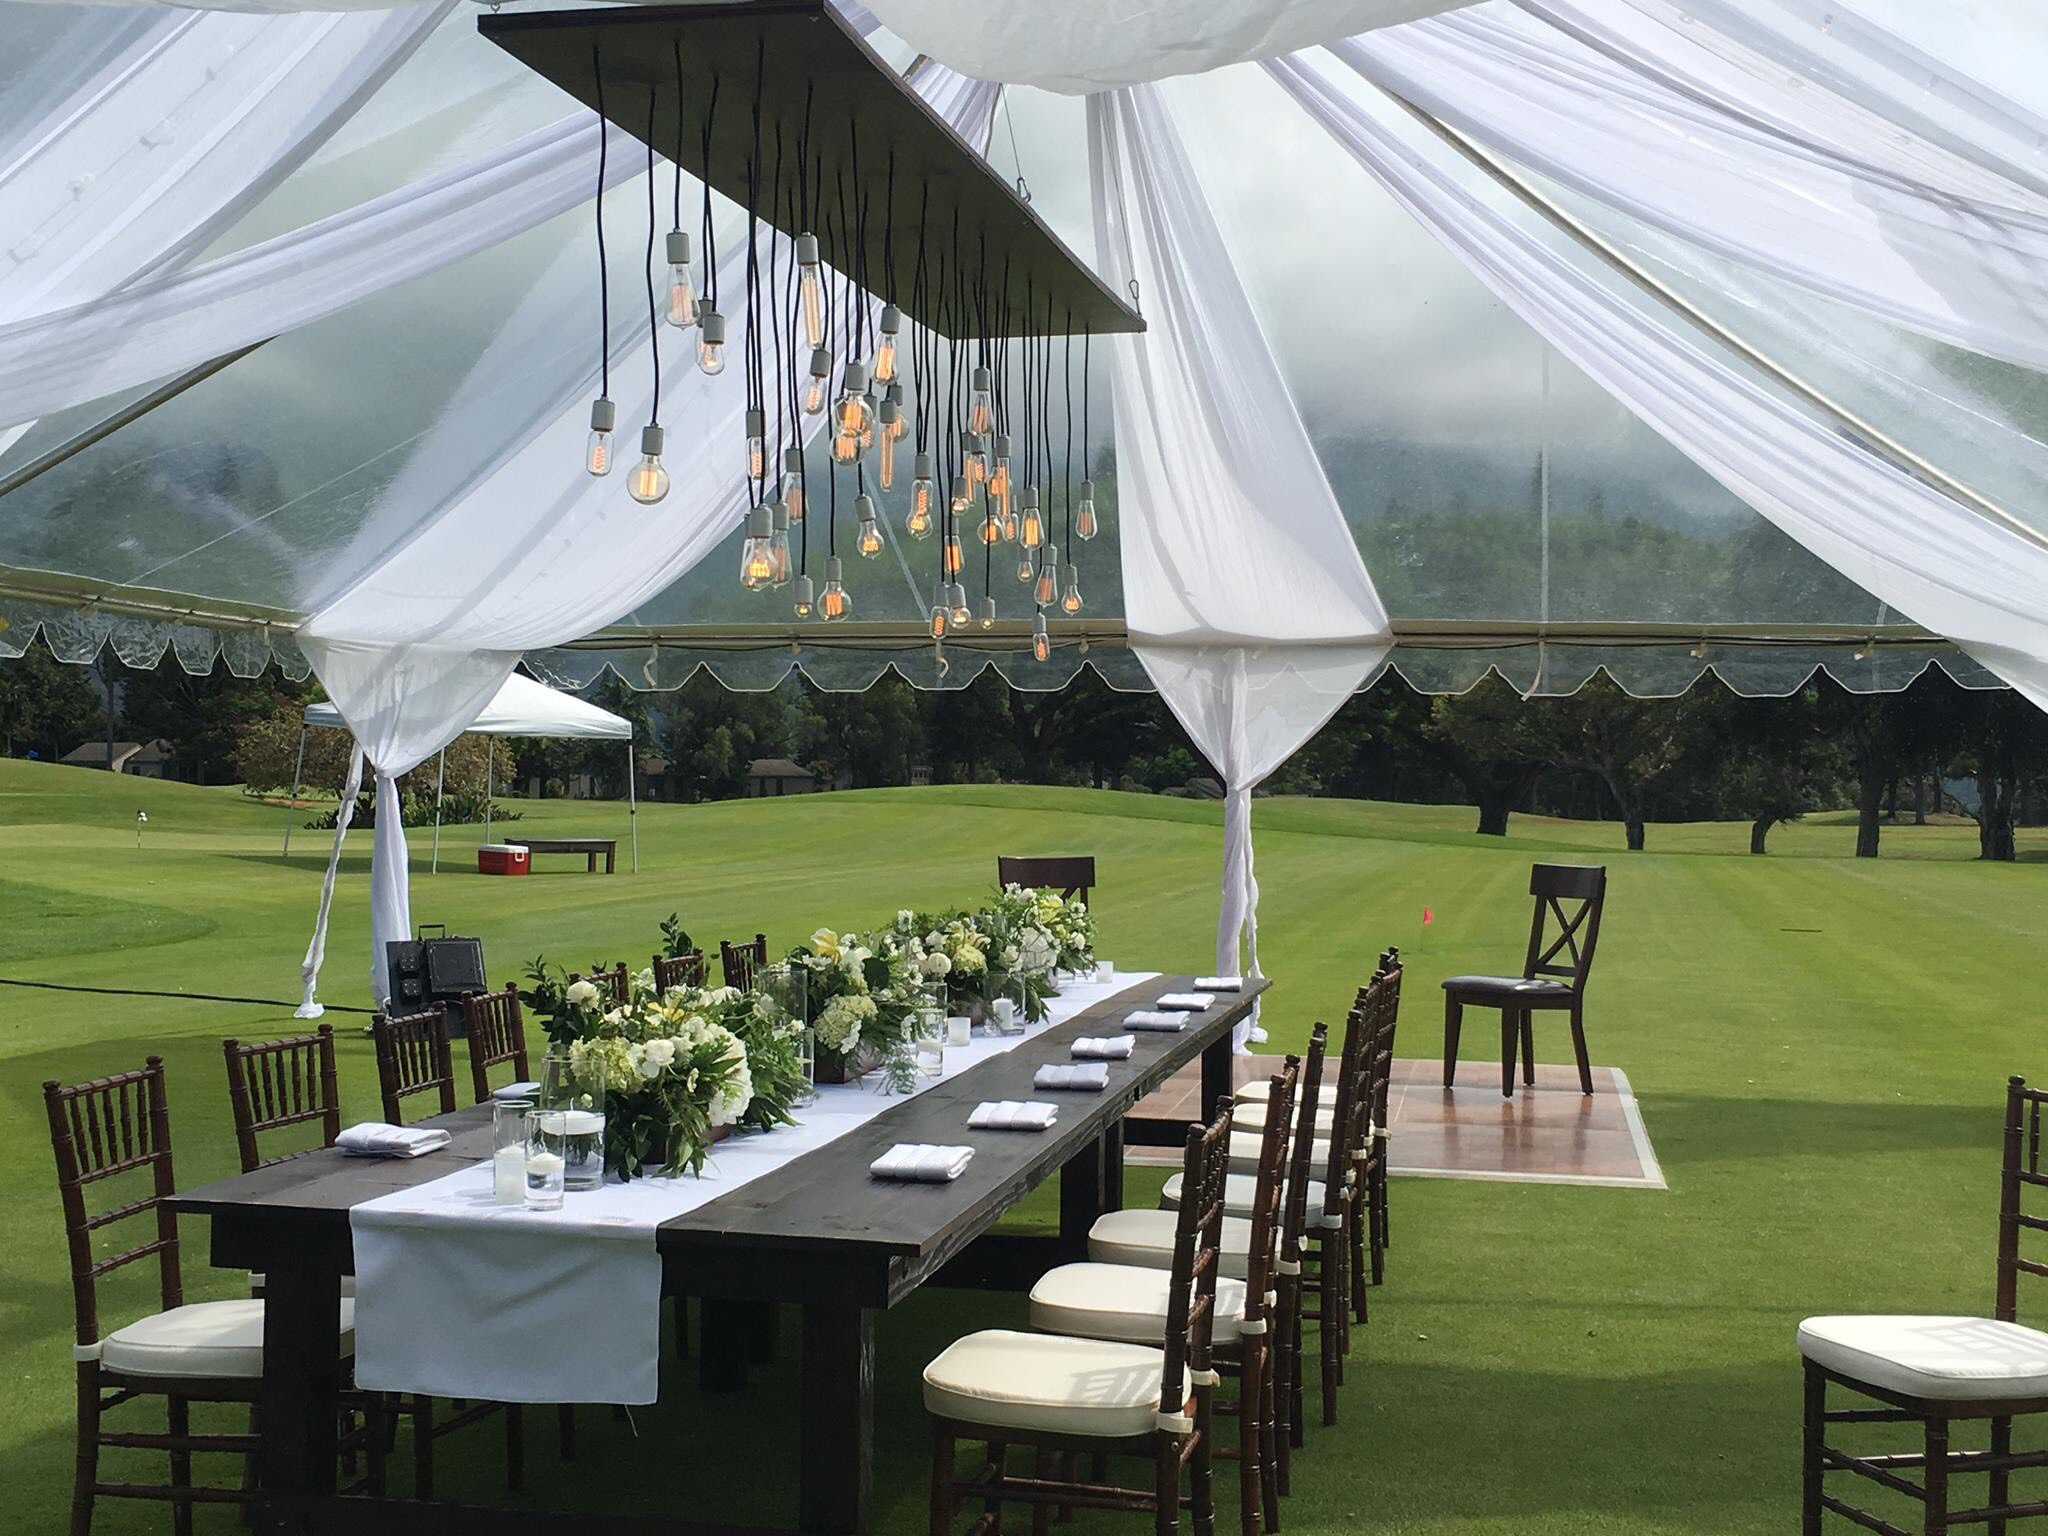 ET Services retro bulb fixtures with white sleeves u0026 draping create a rustic yet elegant ambience in a cleartop tent. & Decorating - ET Events Kauai